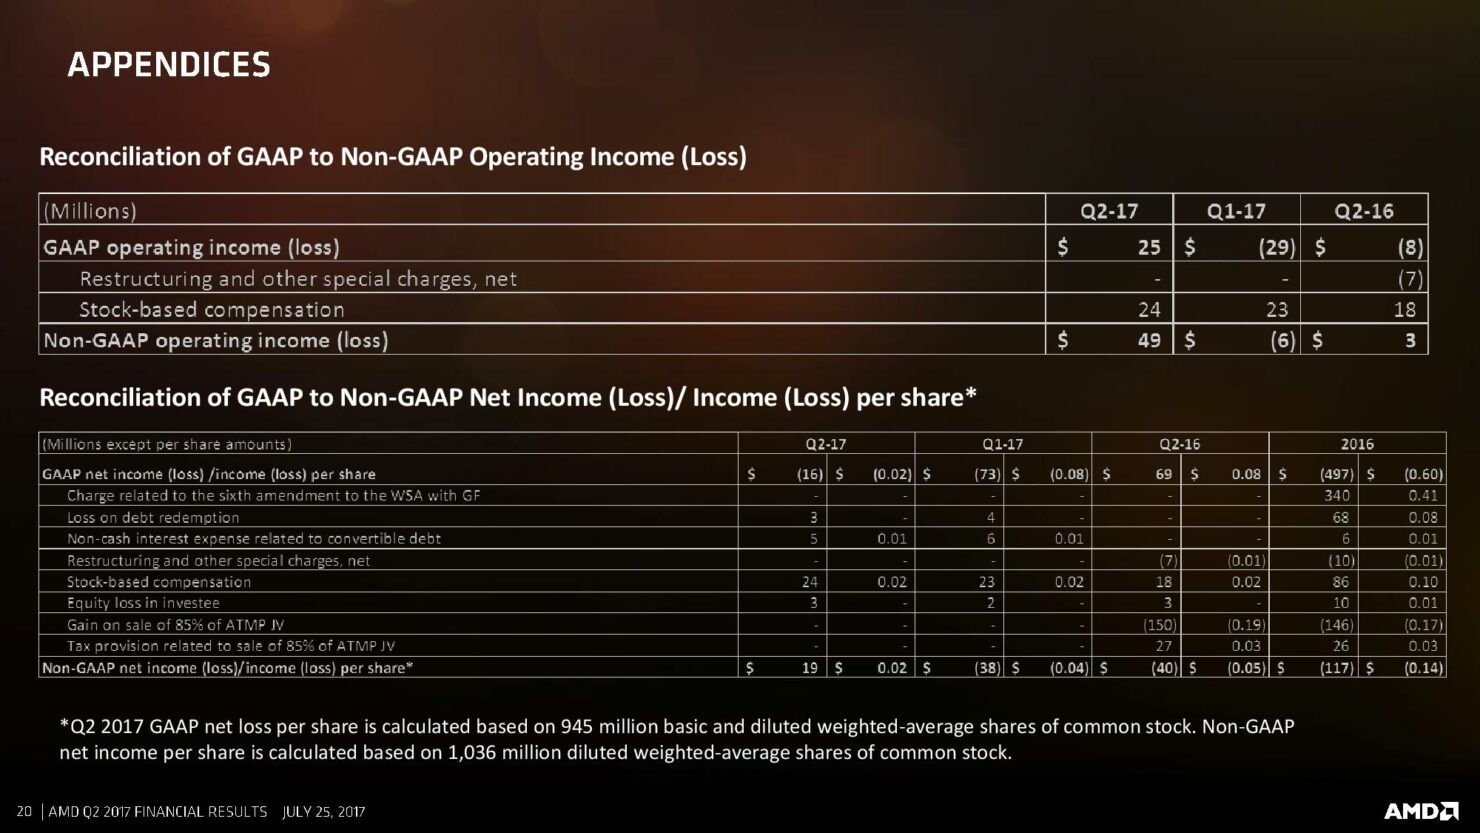 amd-cfo-commentary-slides-q2-17-page-020